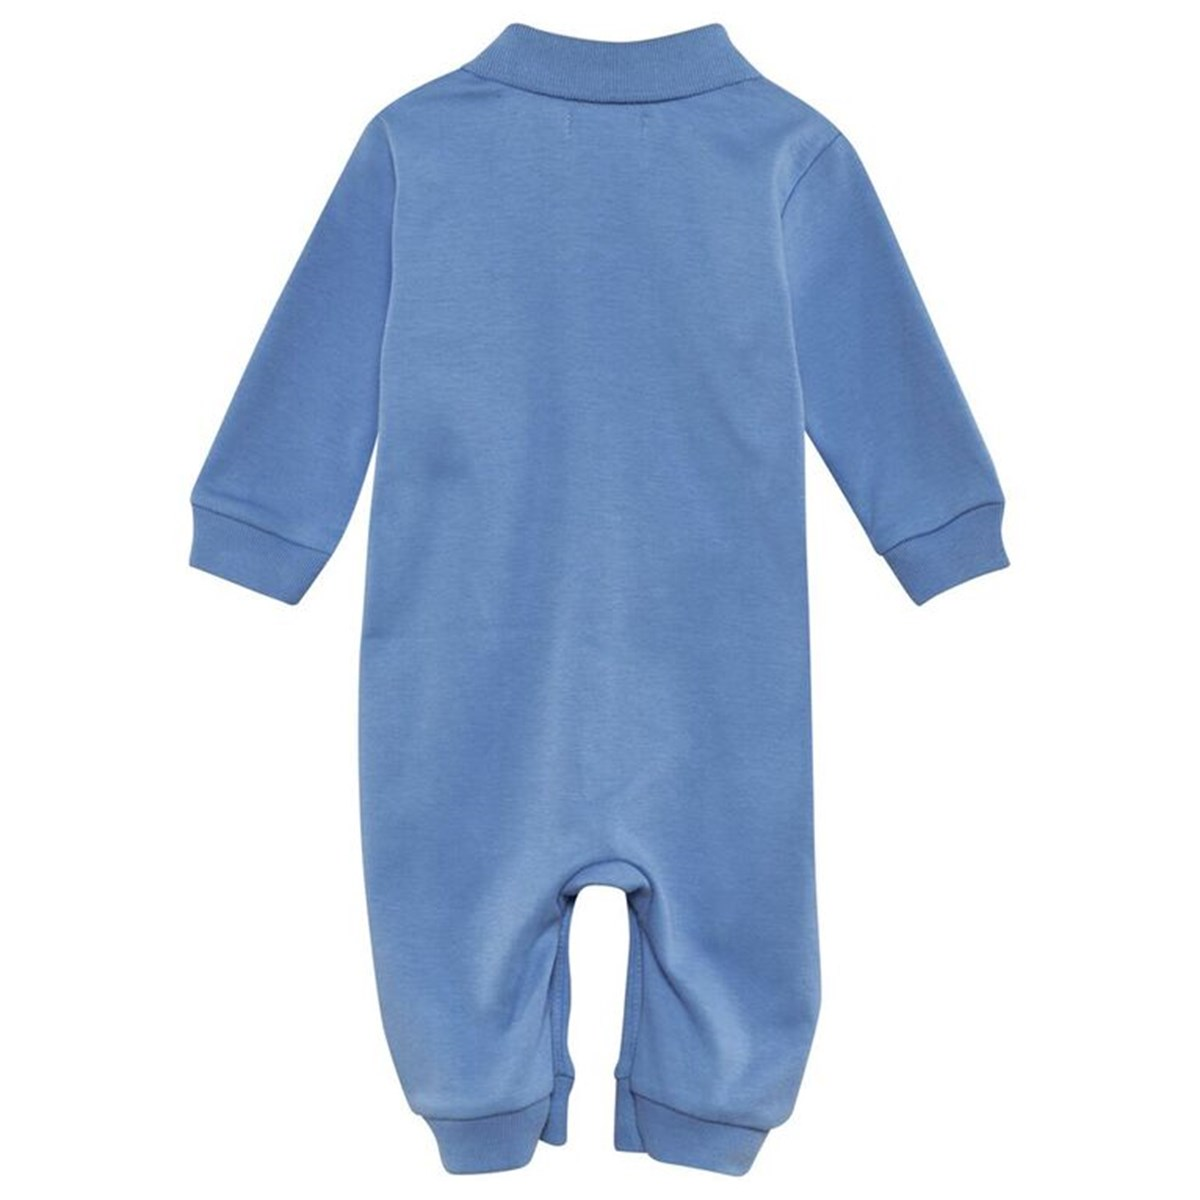 Babyone Baby Jogger Ralph Lauren Solid Cotton Baby One Piece Suffield Blue